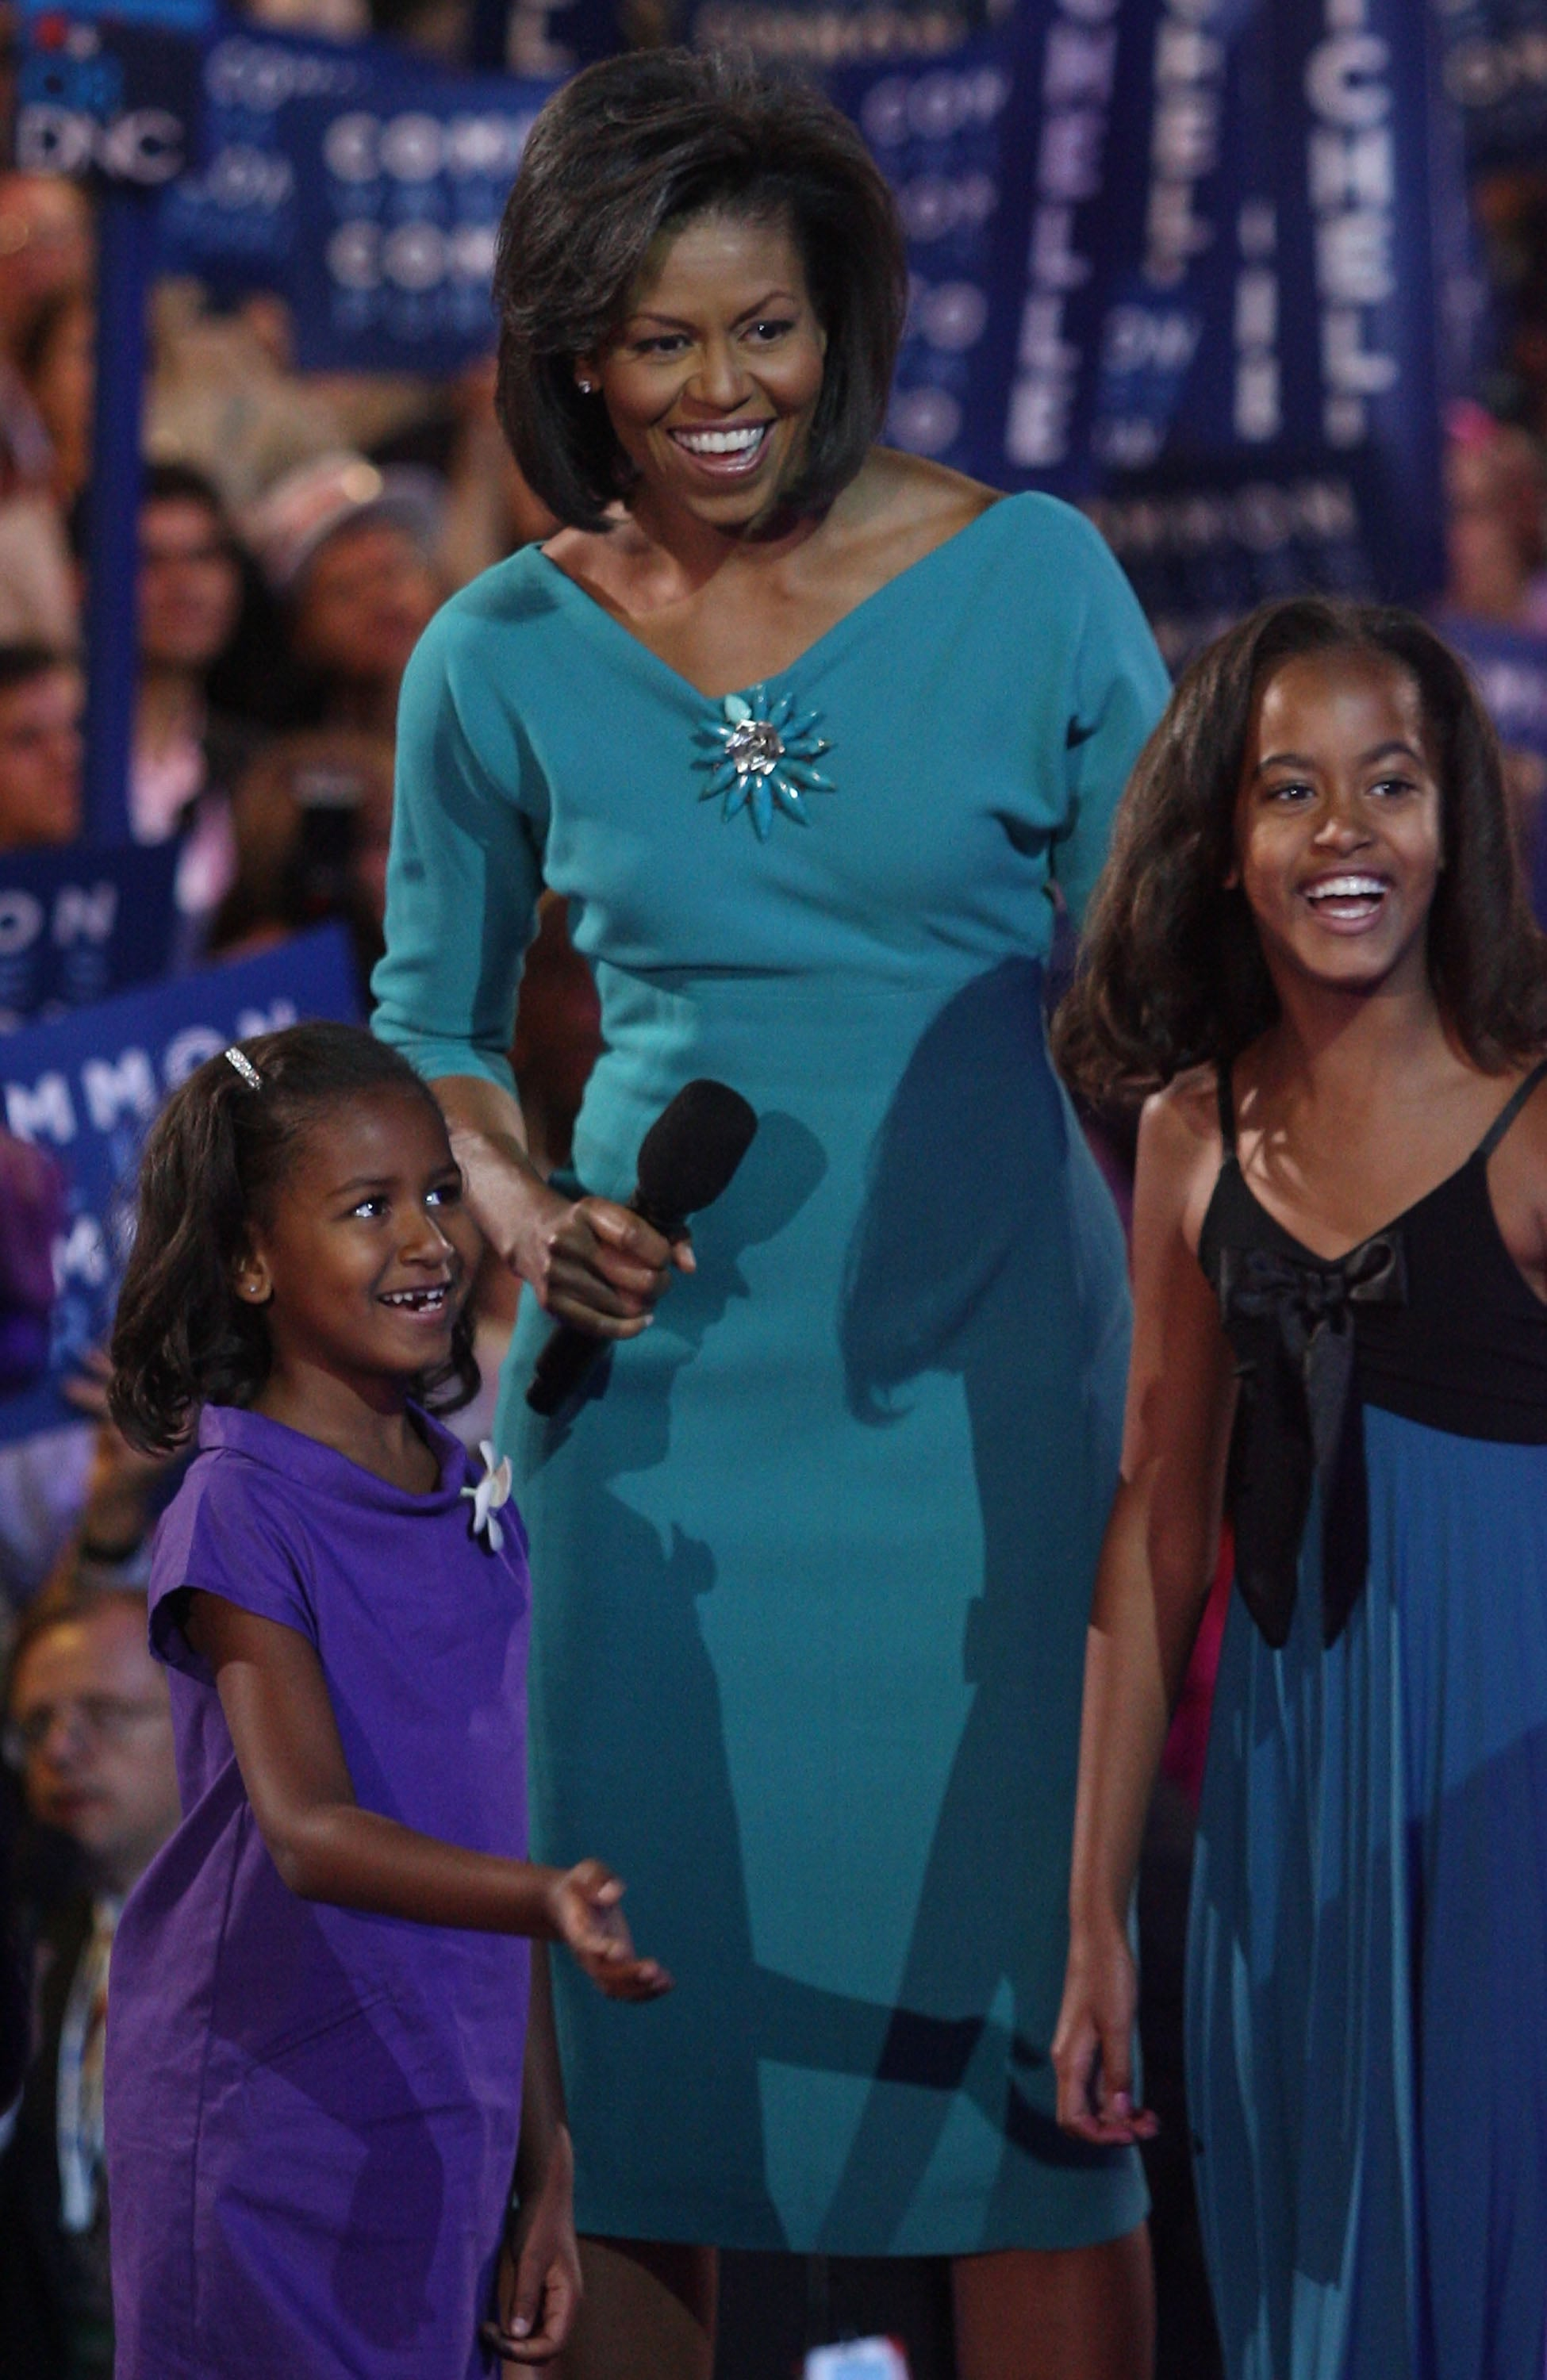 Sasha, Michelle, and Malia were adorable as they were introduced to the country at the Democratic National Convention in 2008.